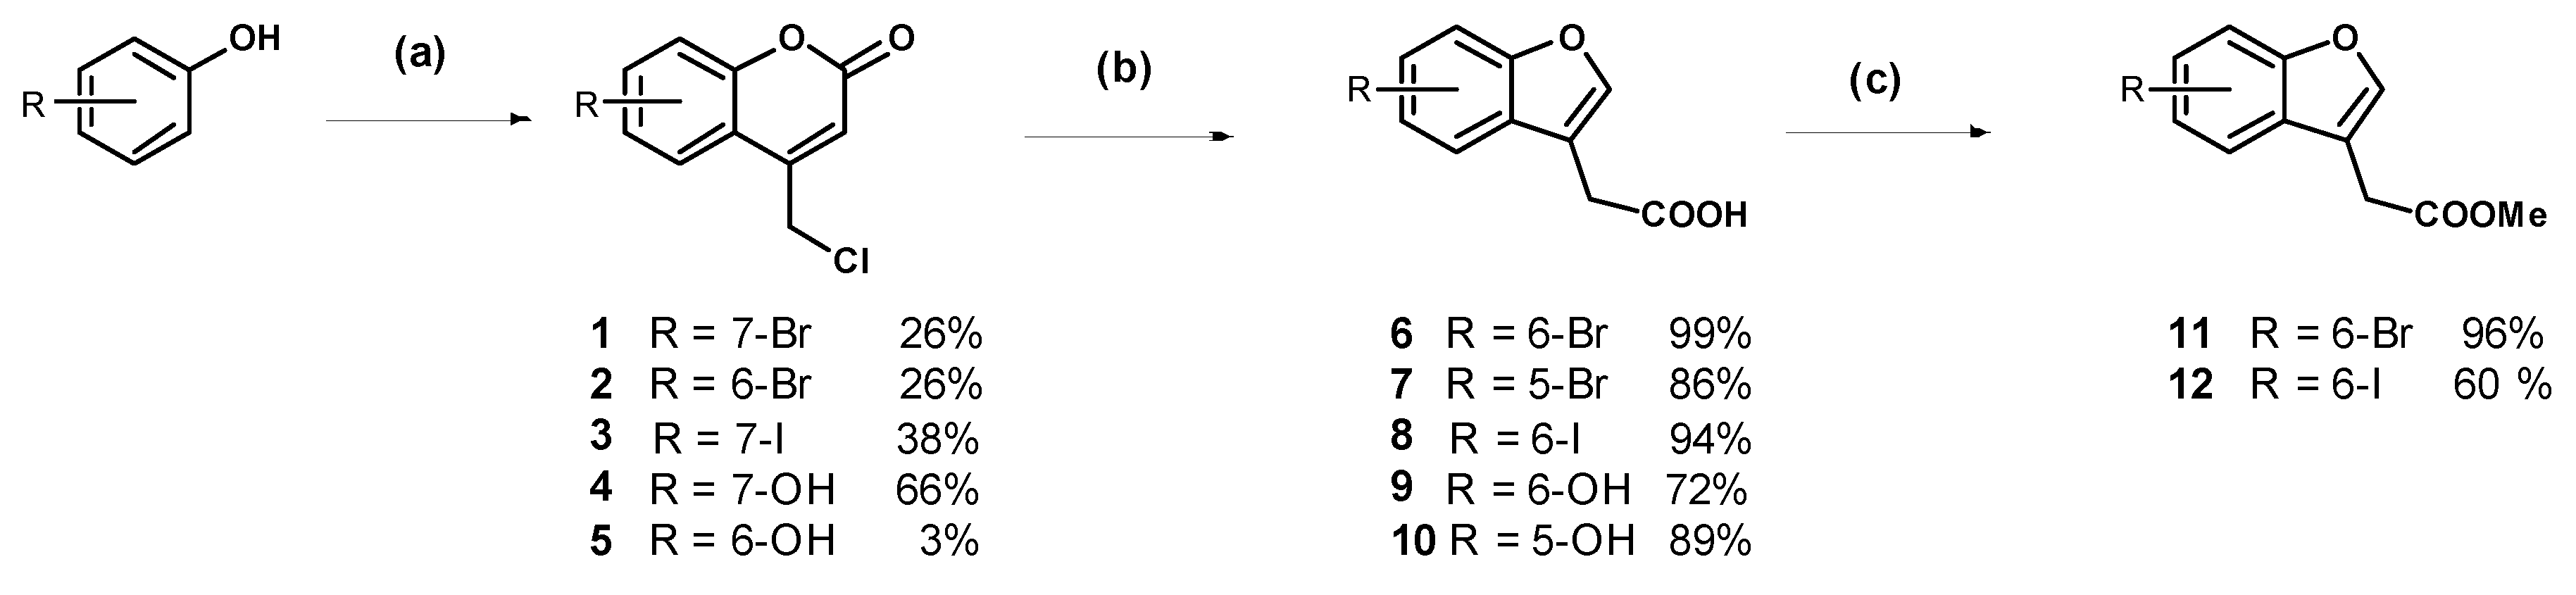 Molecules 24 03756 sch001